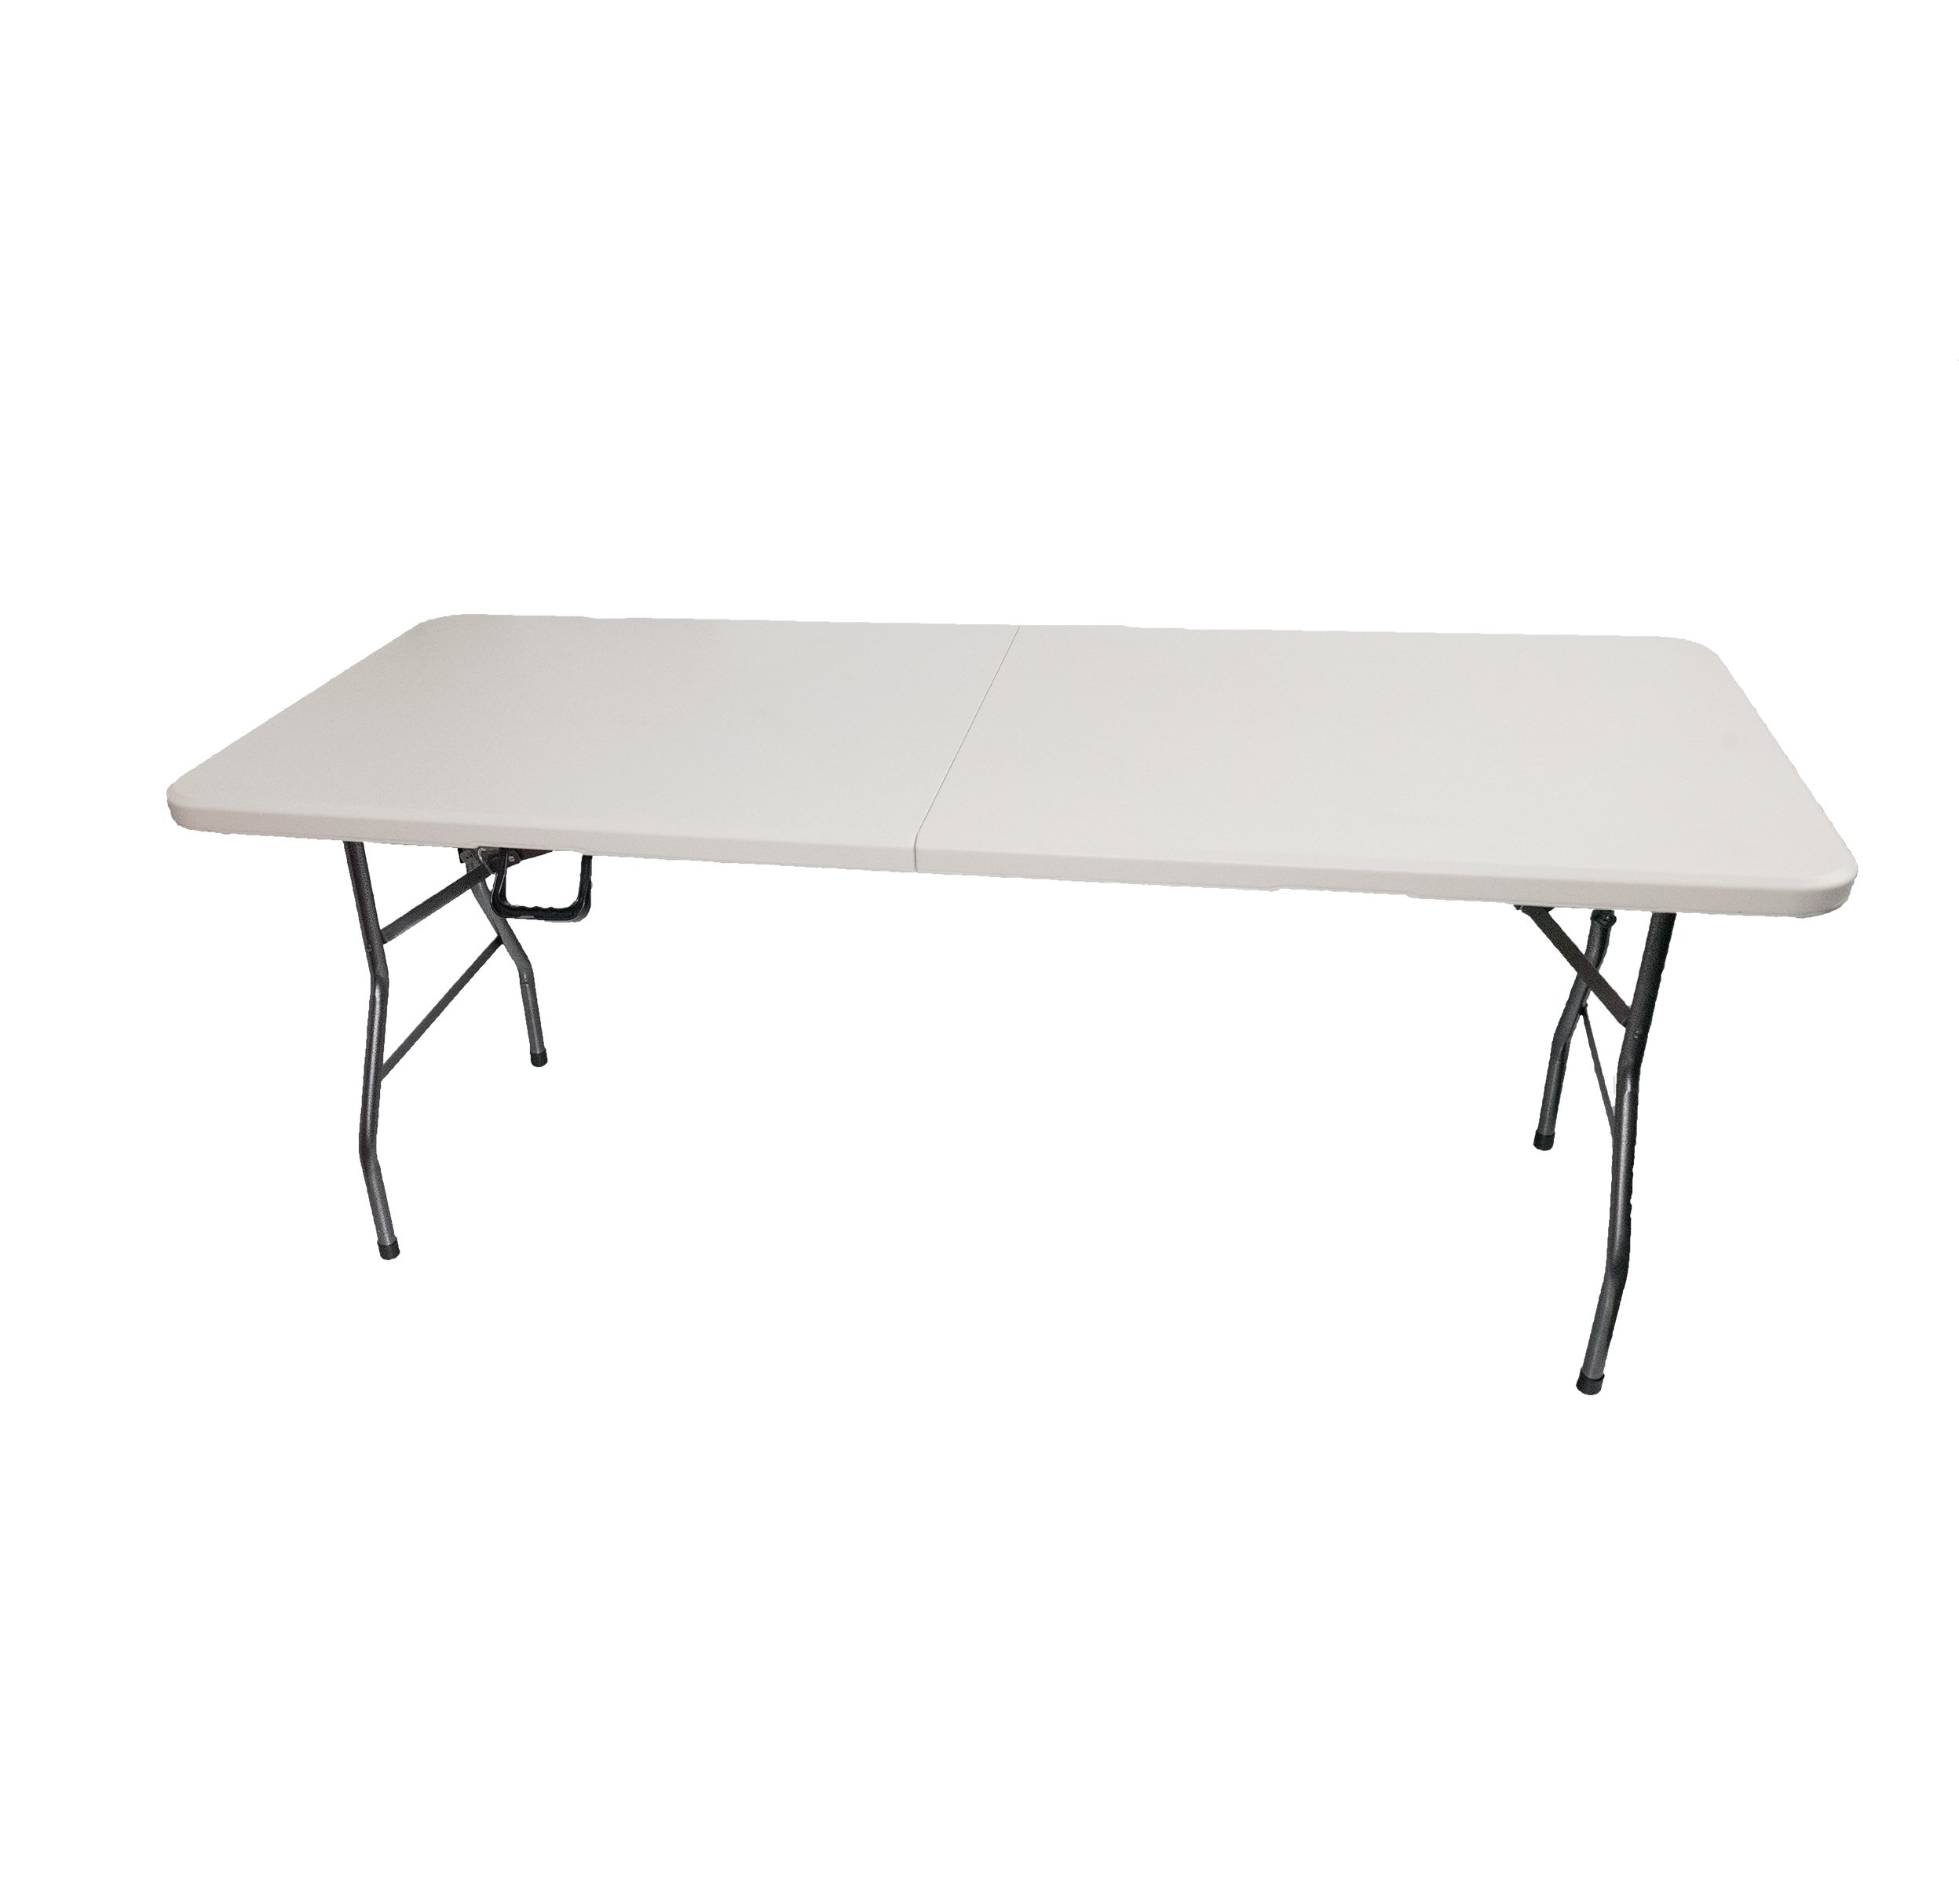 Source One Premium Folding Table Portable 6 Foot Long Light Weight Top Professional Quality